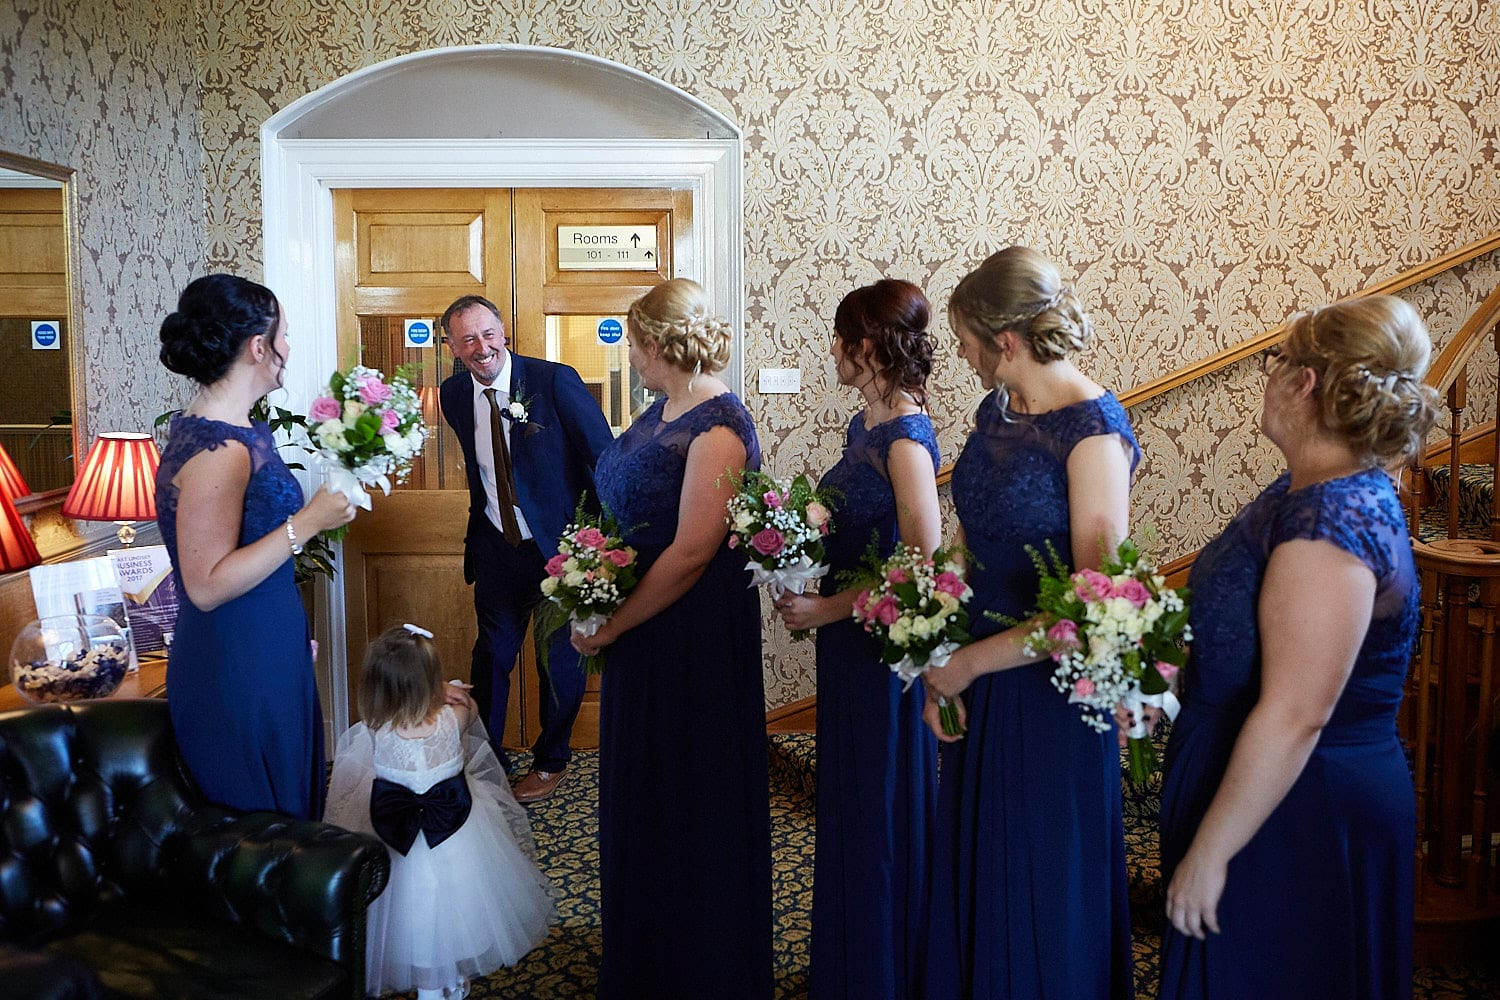 A father smiles with pride as she preps for her wedding